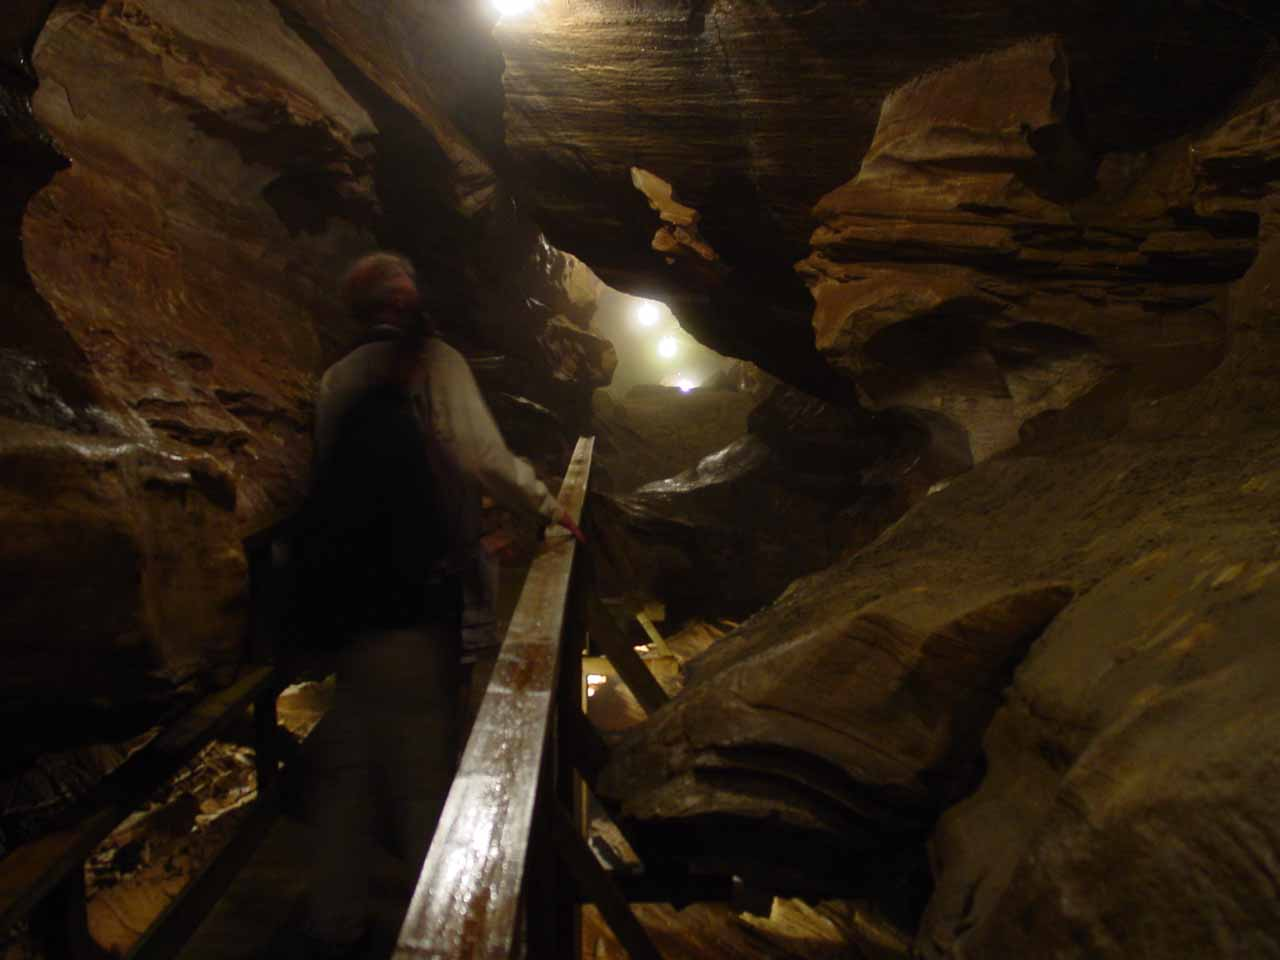 Towards the end of the day, we would finally visit the impressive Grønligrotta Cave in Nordland County